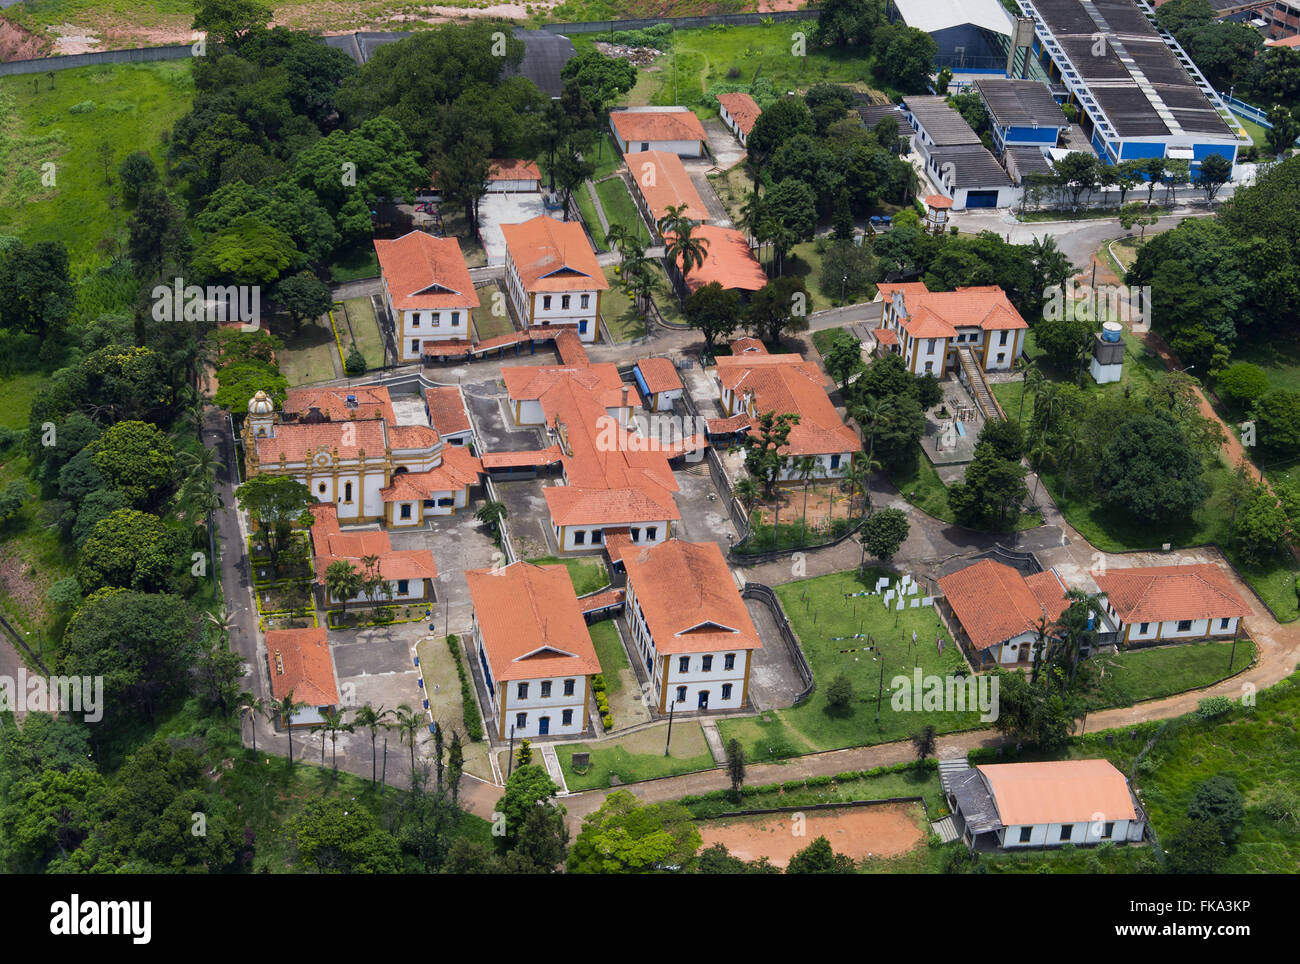 Aerial view of St. Therese Association - Stock Image